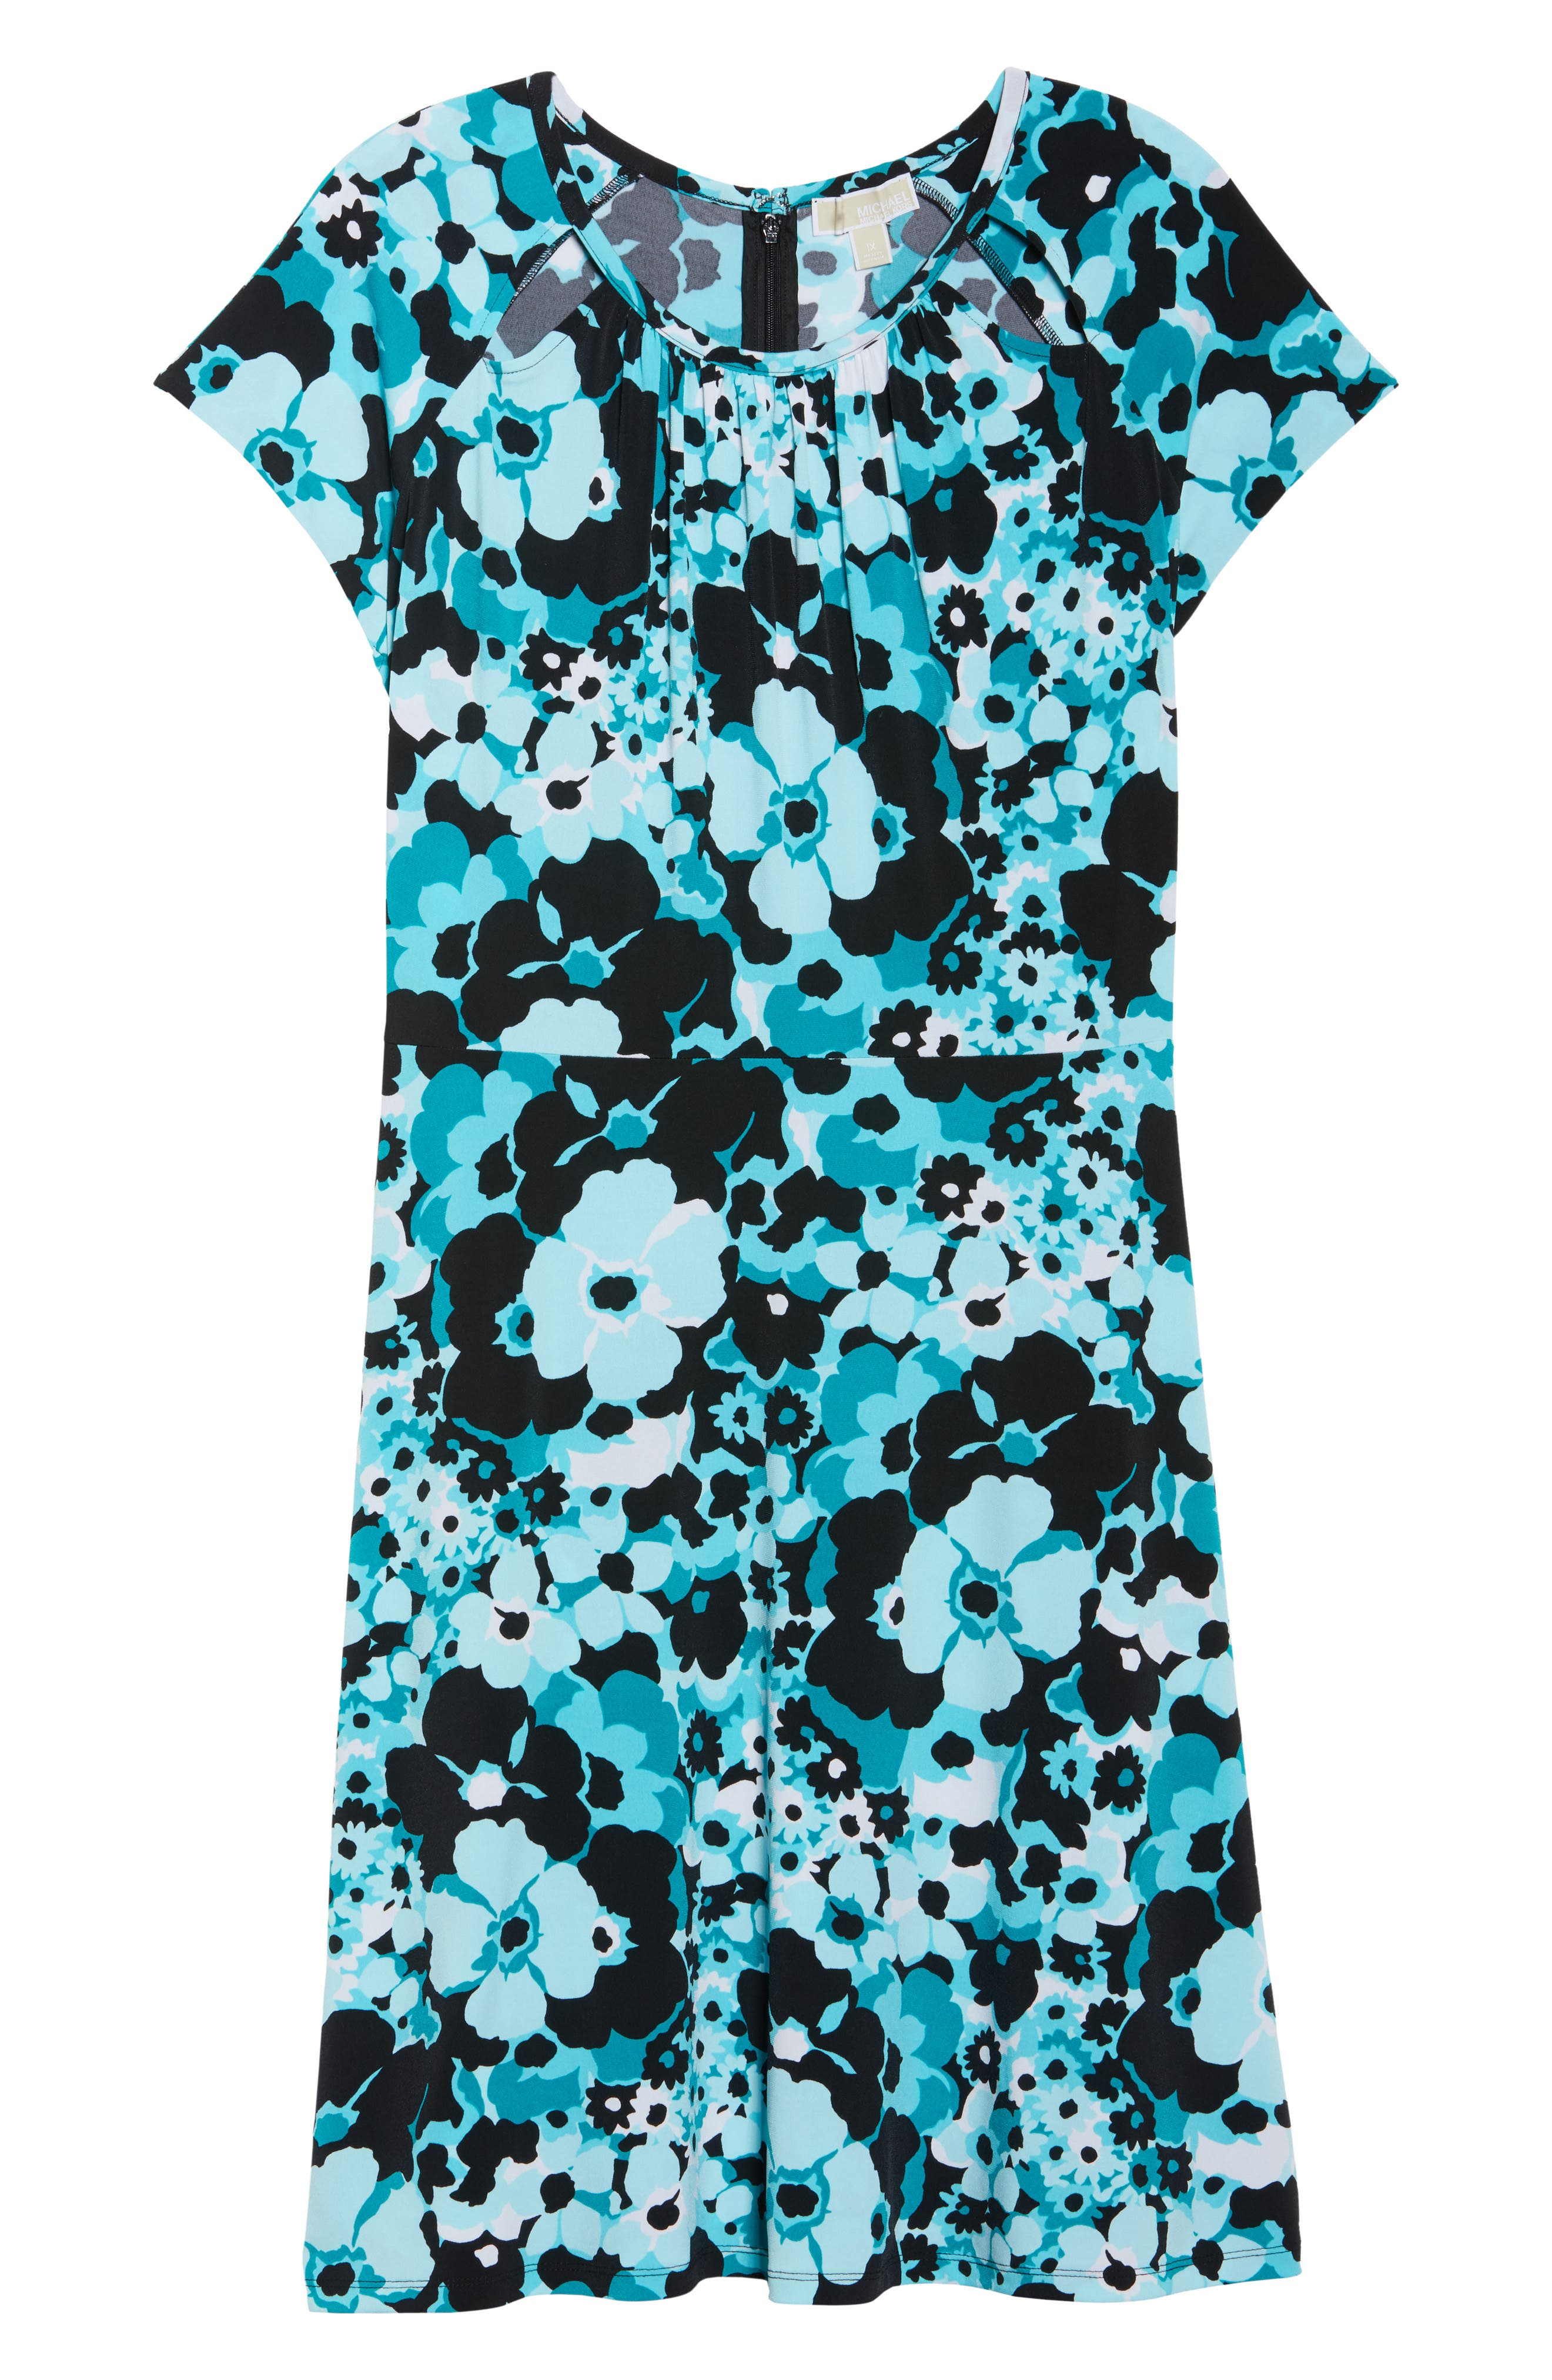 Springtime Floral Cutout Dress,                             Alternate thumbnail 6, color,                             494